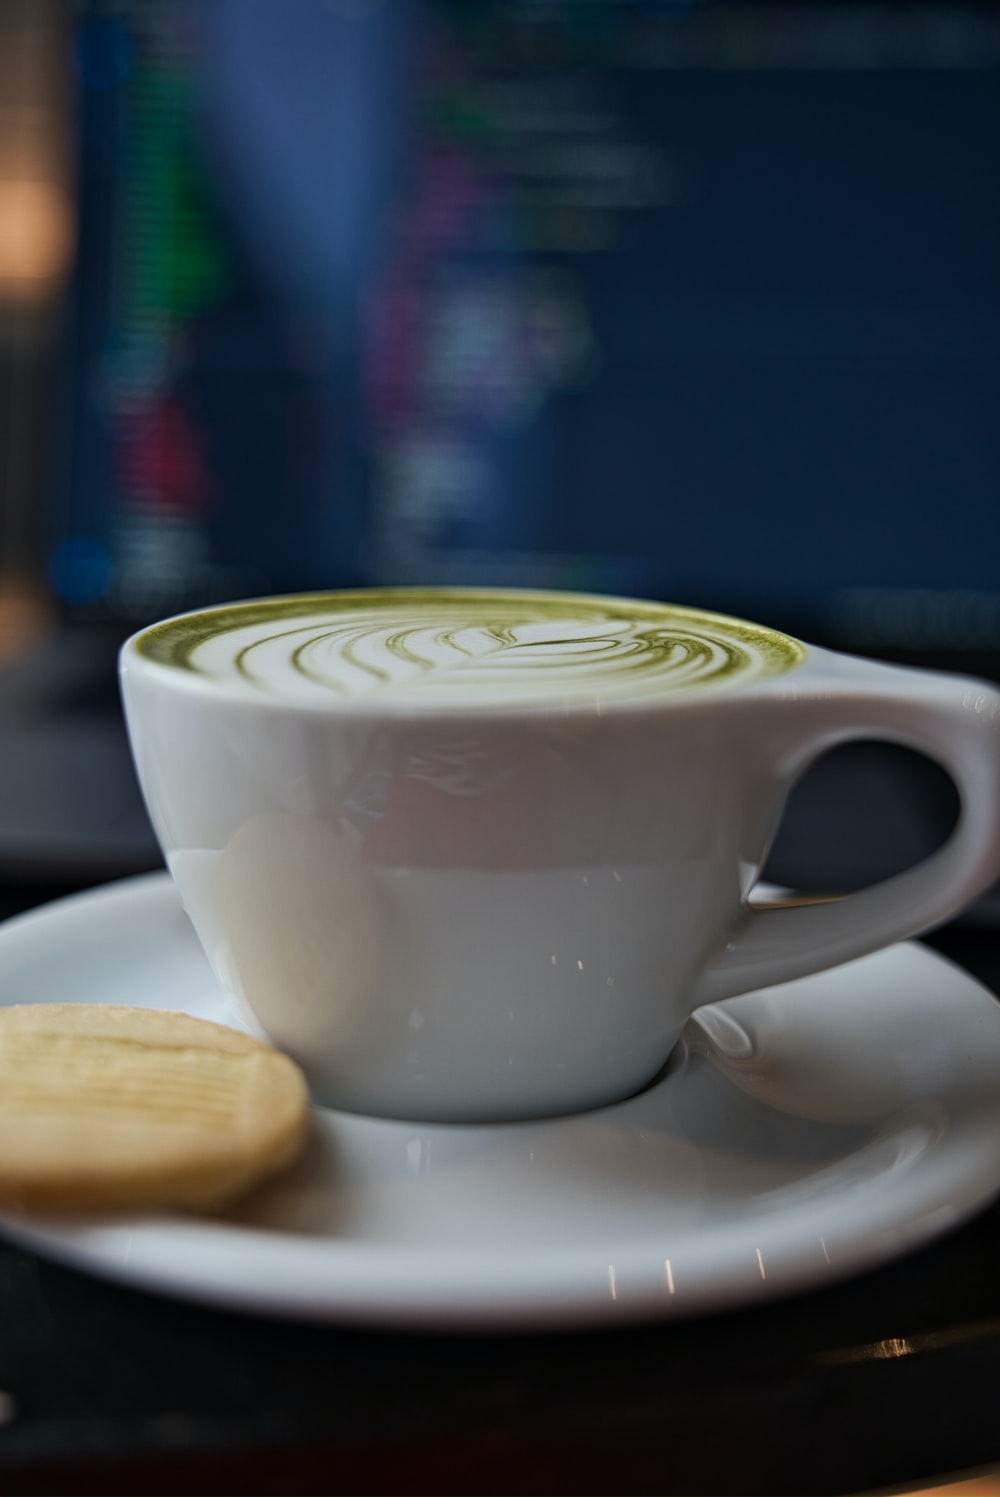 white ceramic teacup with saucer close-up photography